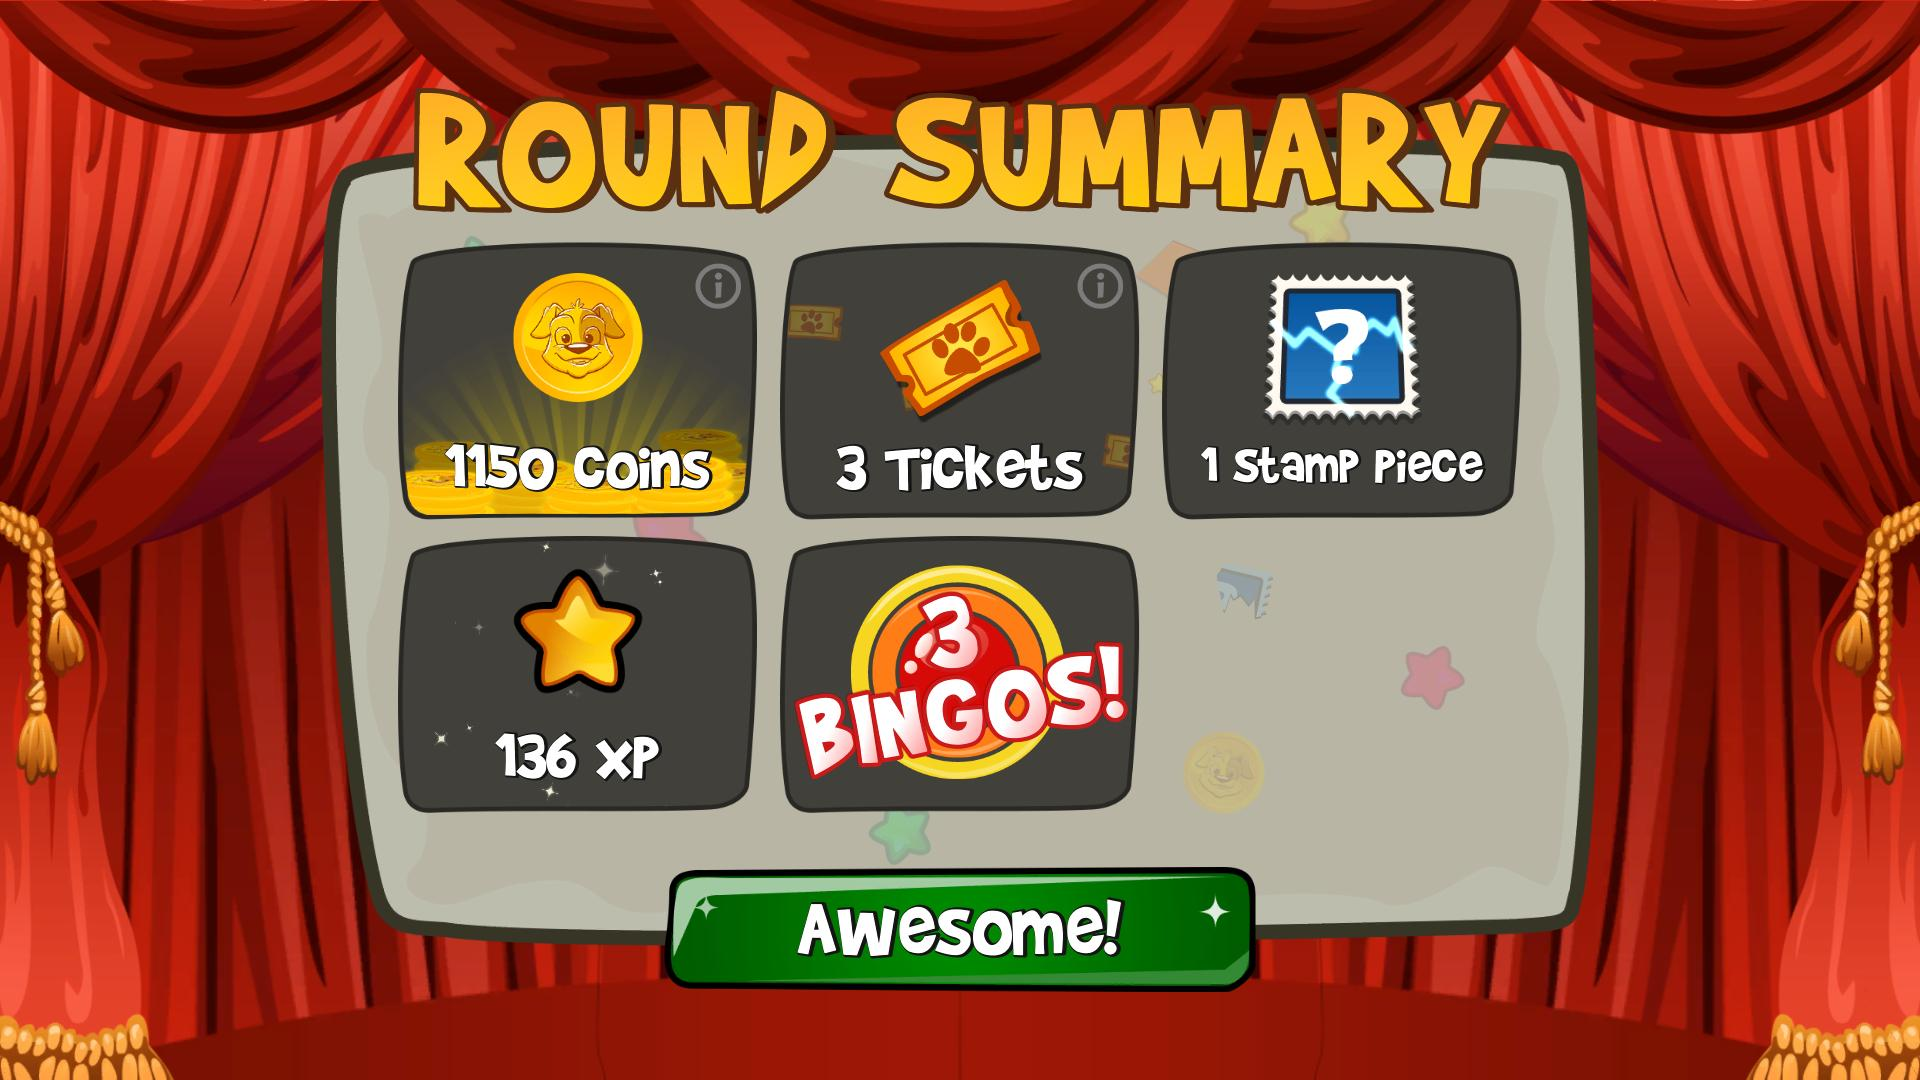 Bingo Abradoodle - Bingo Games Free to Play! 3.0.02 Screenshot 17